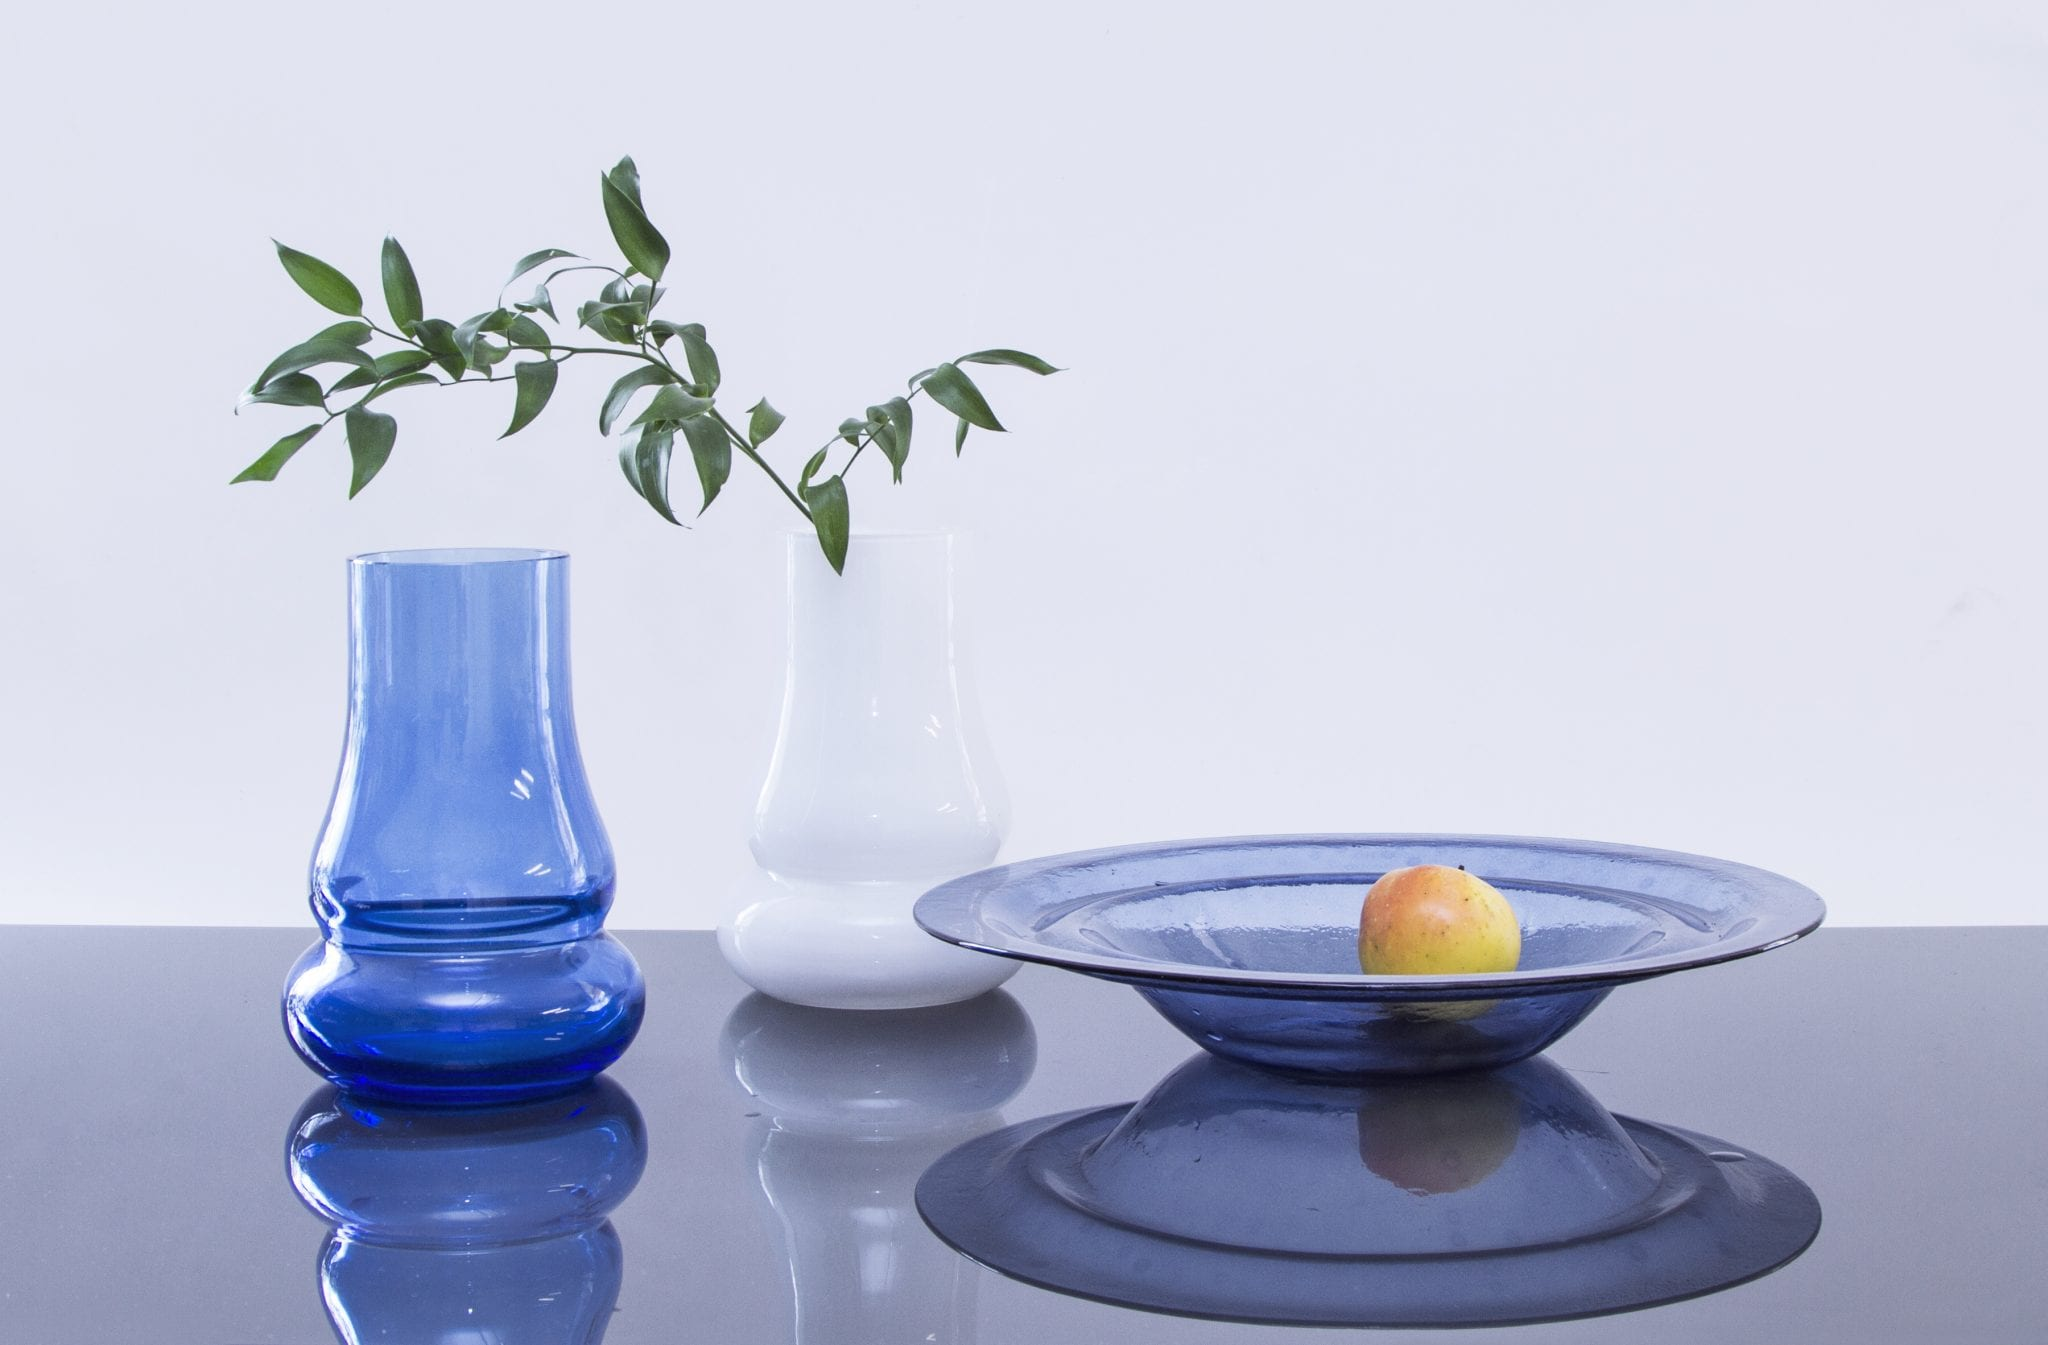 Vases and Plate